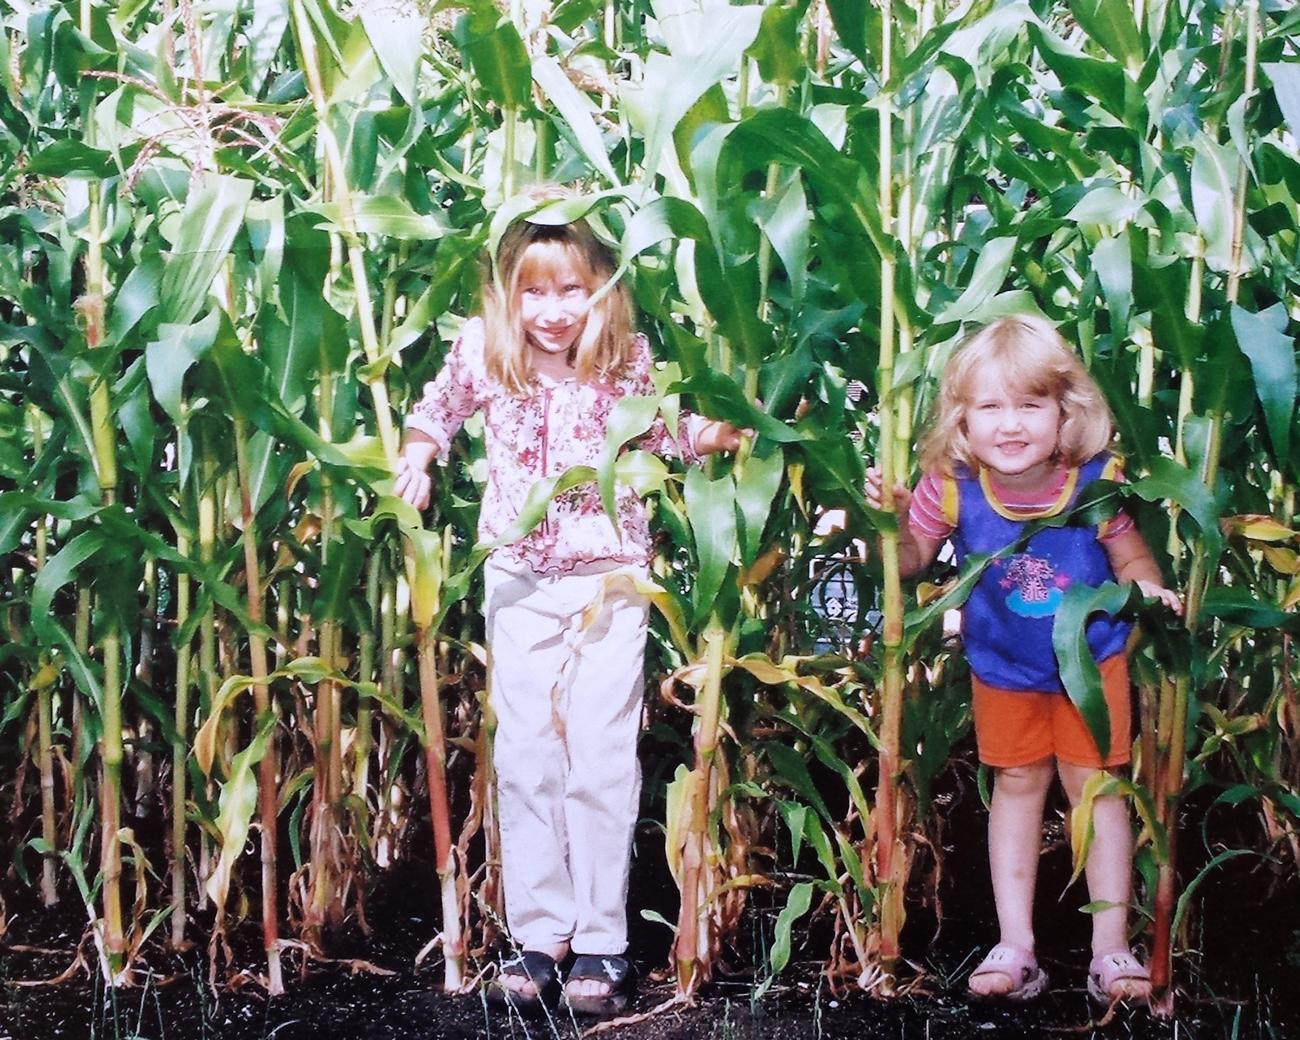 Children peek through corn stalks in our summer garden